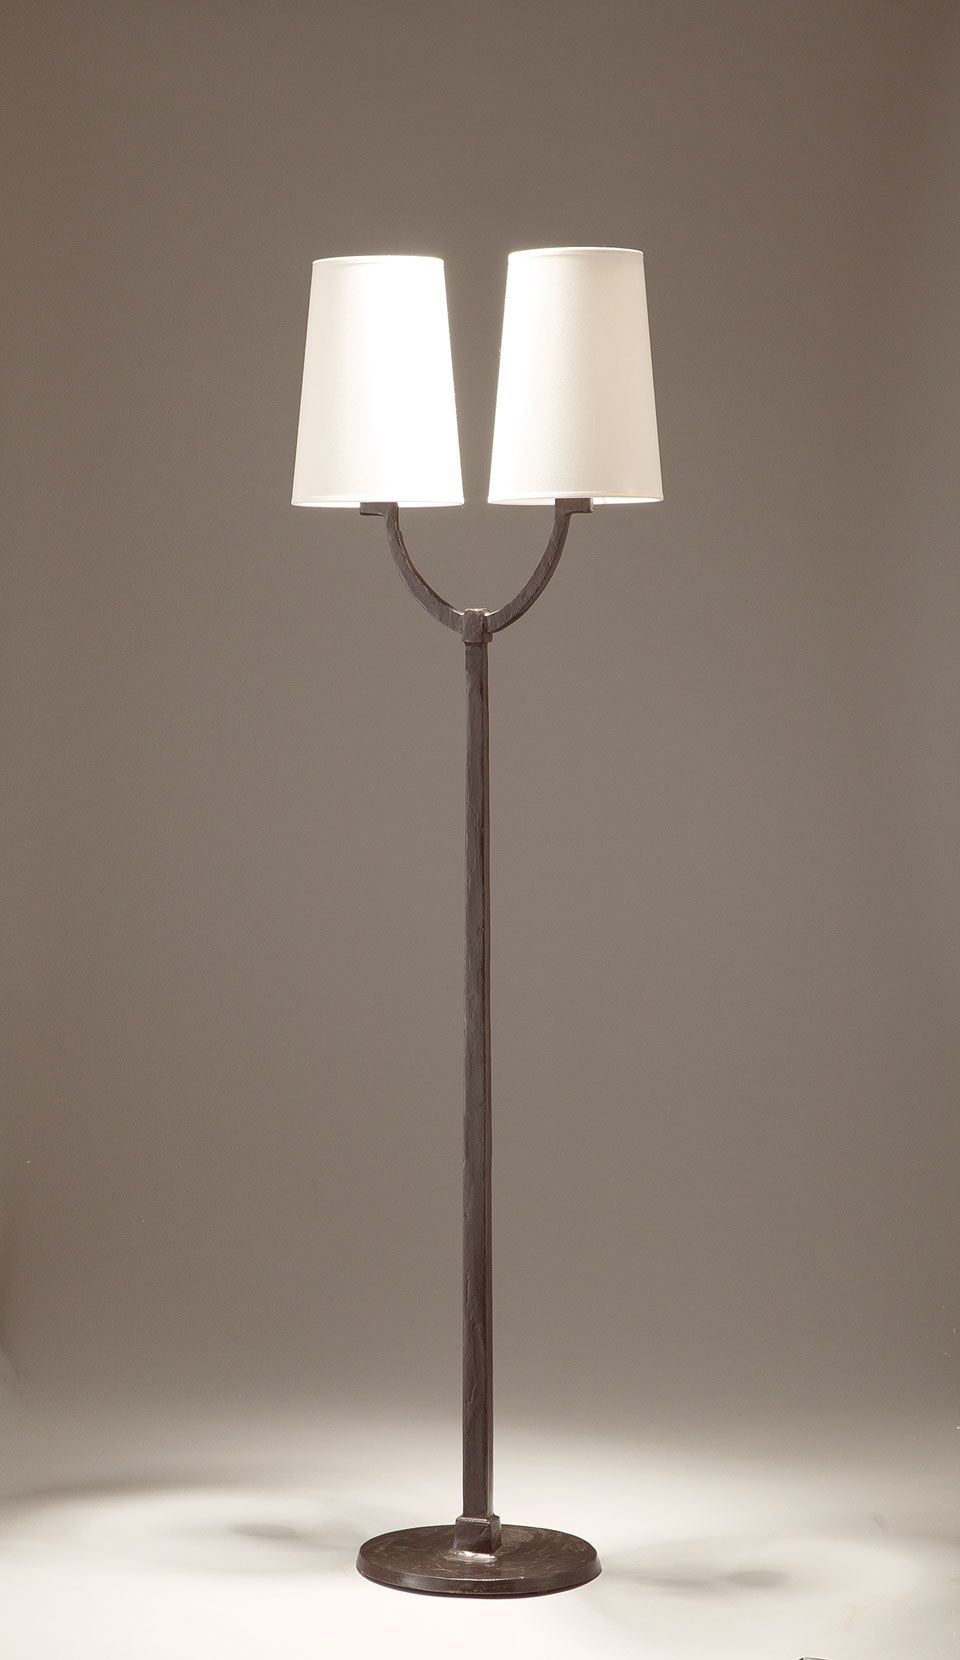 Image of: 2 Lights Black Patinated Bronze Floor Lamp Perceval Objet Insolite Hight Qualite Lighting Made In France Ref 17090390